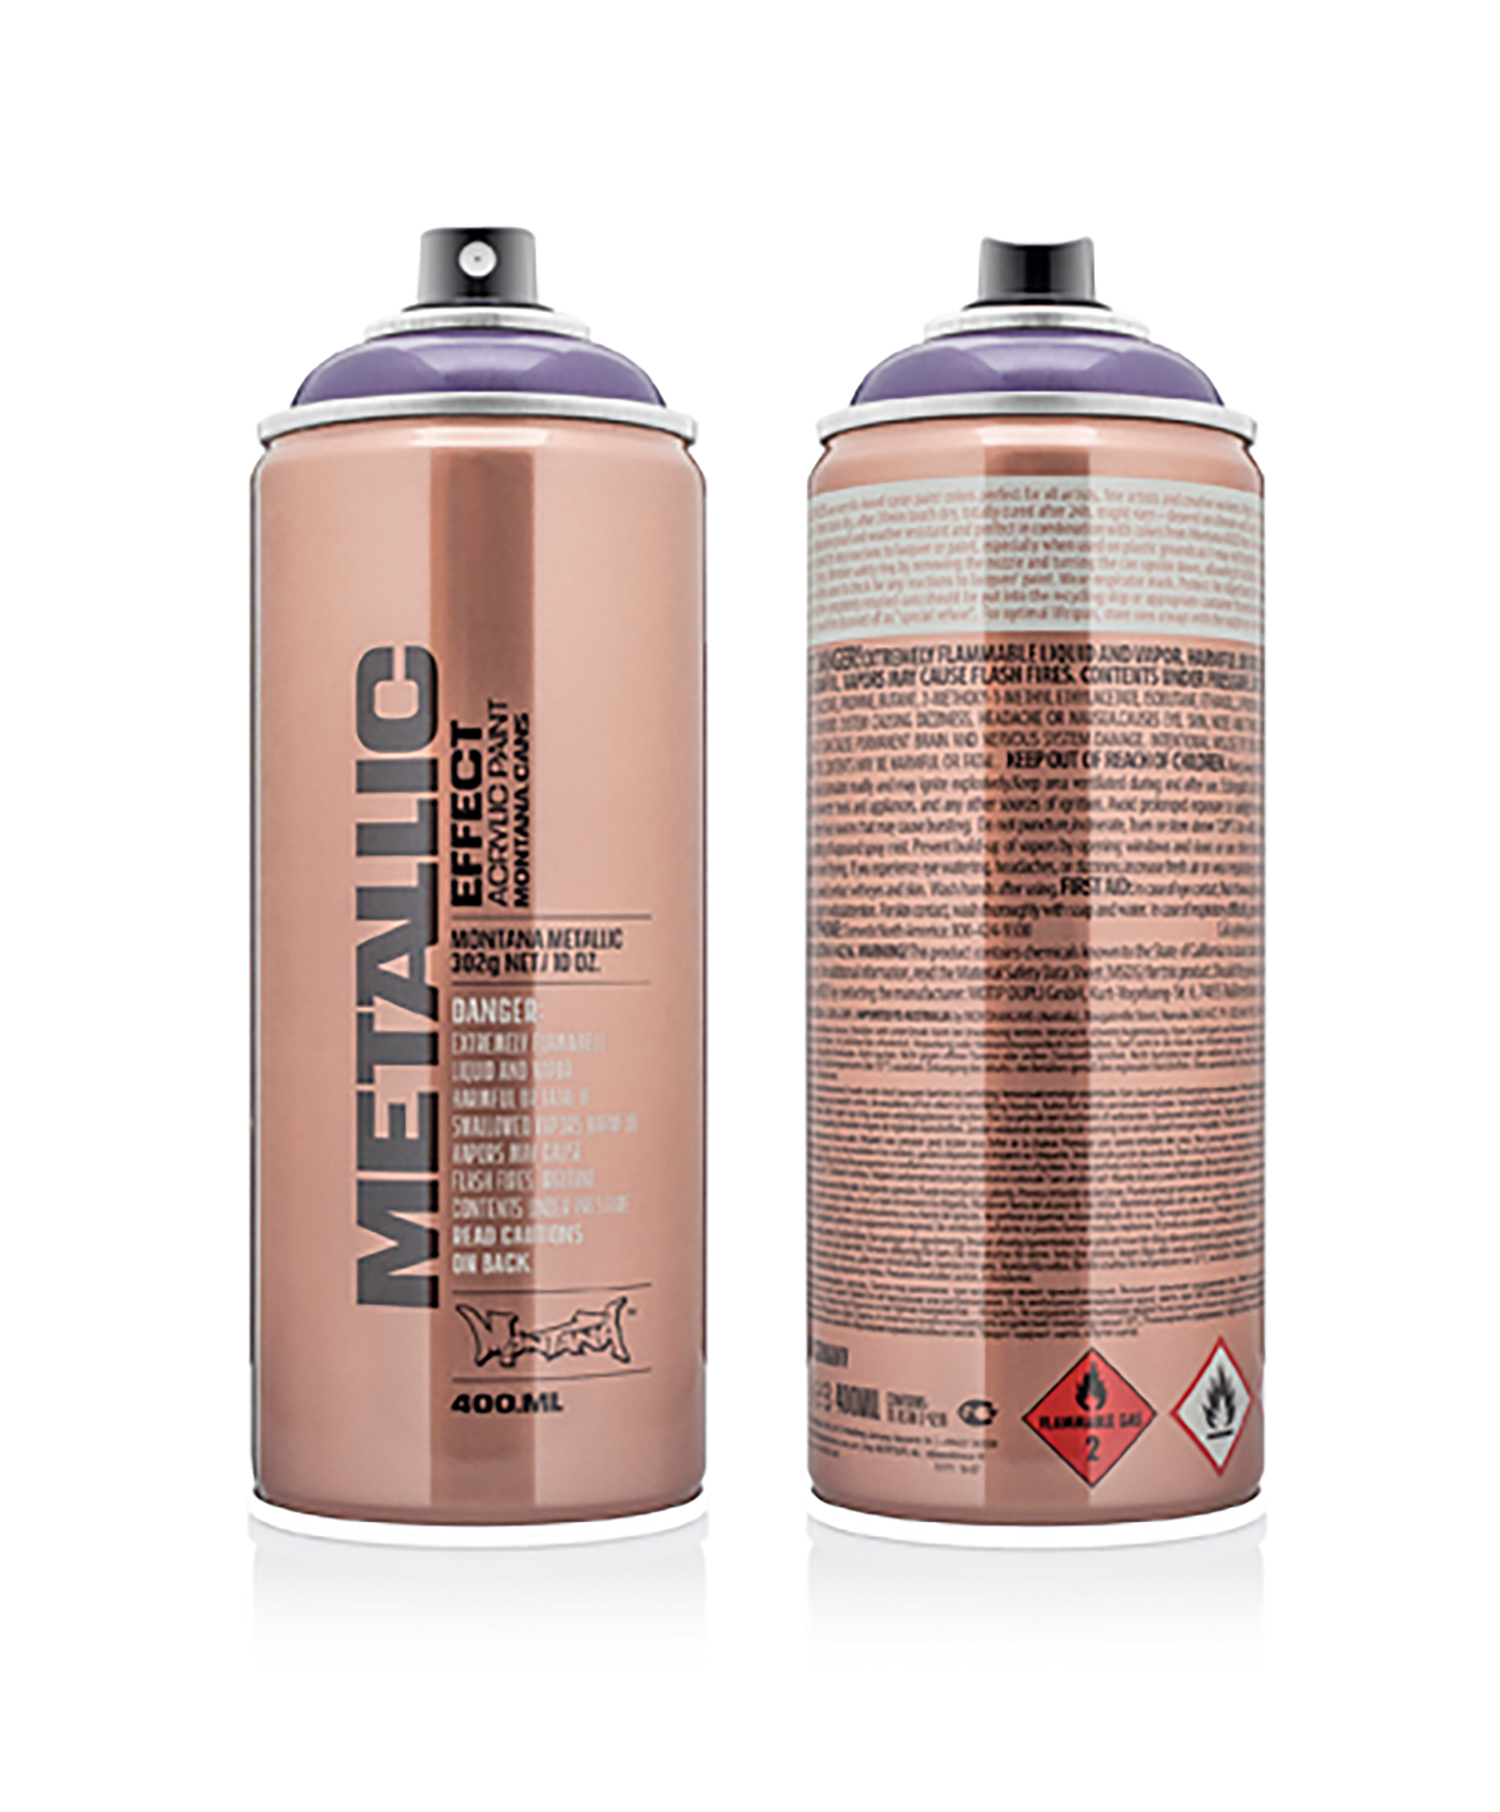 MONTANA-EFFECT-METALLIC-SPRAY-400ML_EMC4230